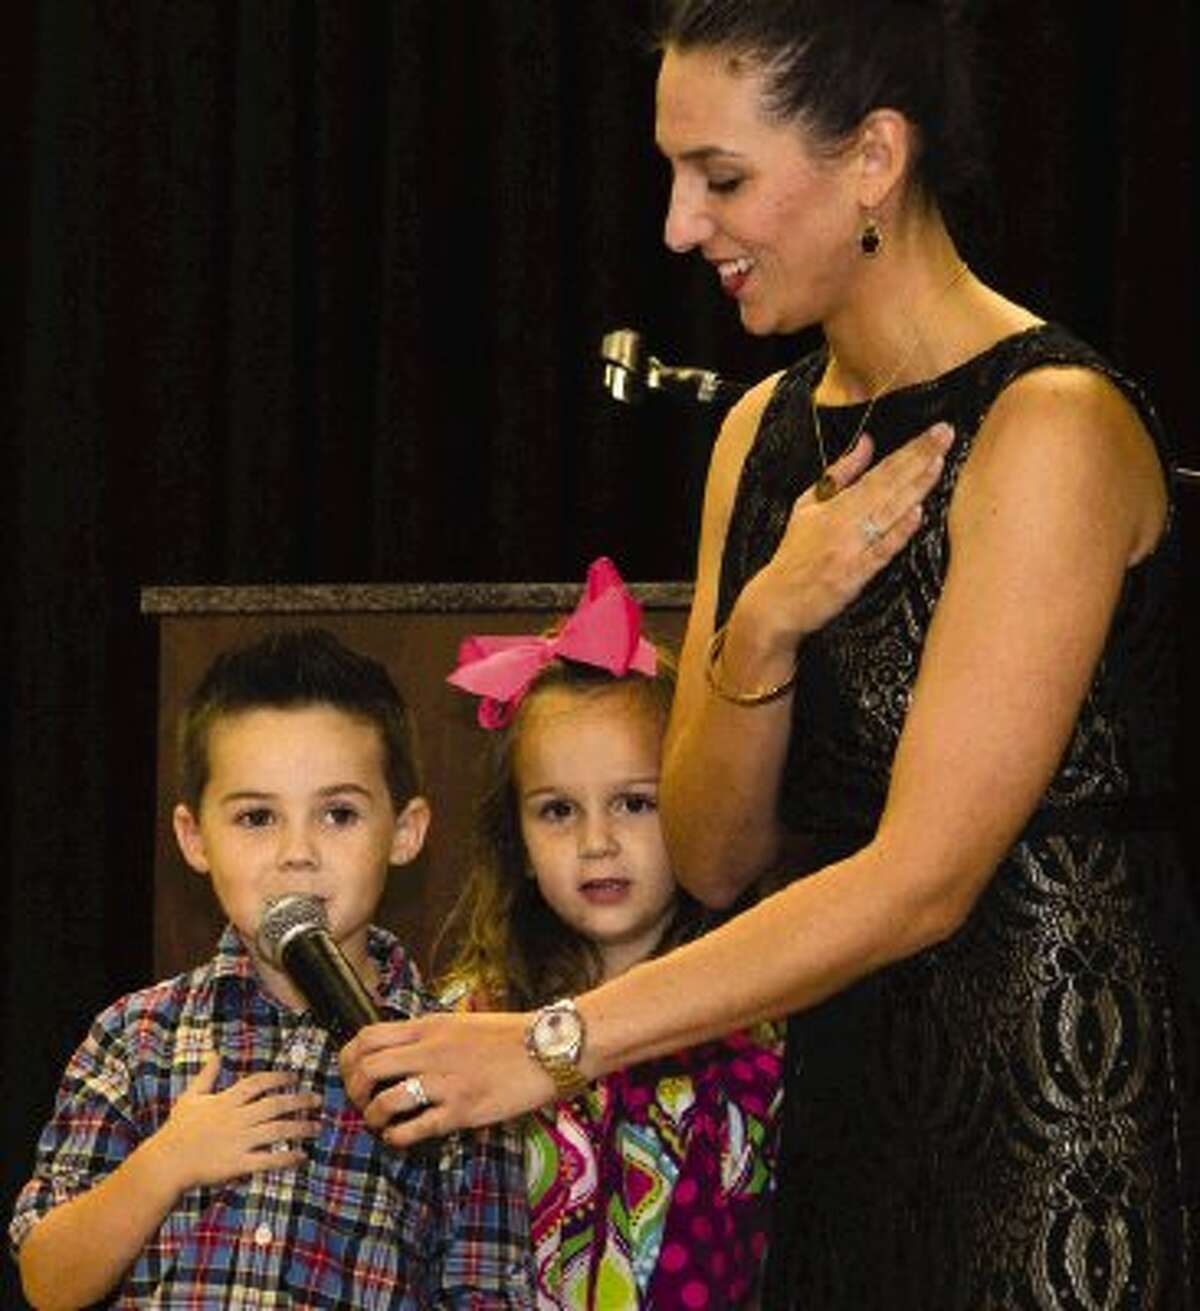 Ann K. Snyder Elementary School Principal Lindsay Ardion recites the Pledge of Allegiance with Braden Sanchez and Hayes Watson Monday night during an event to dedicate the new school to the woman it is named after. Ann K. Snyder, president and CEO of Interfaith of The Woodlands, was honored by children singing and with a video produced by her family and colleagues.